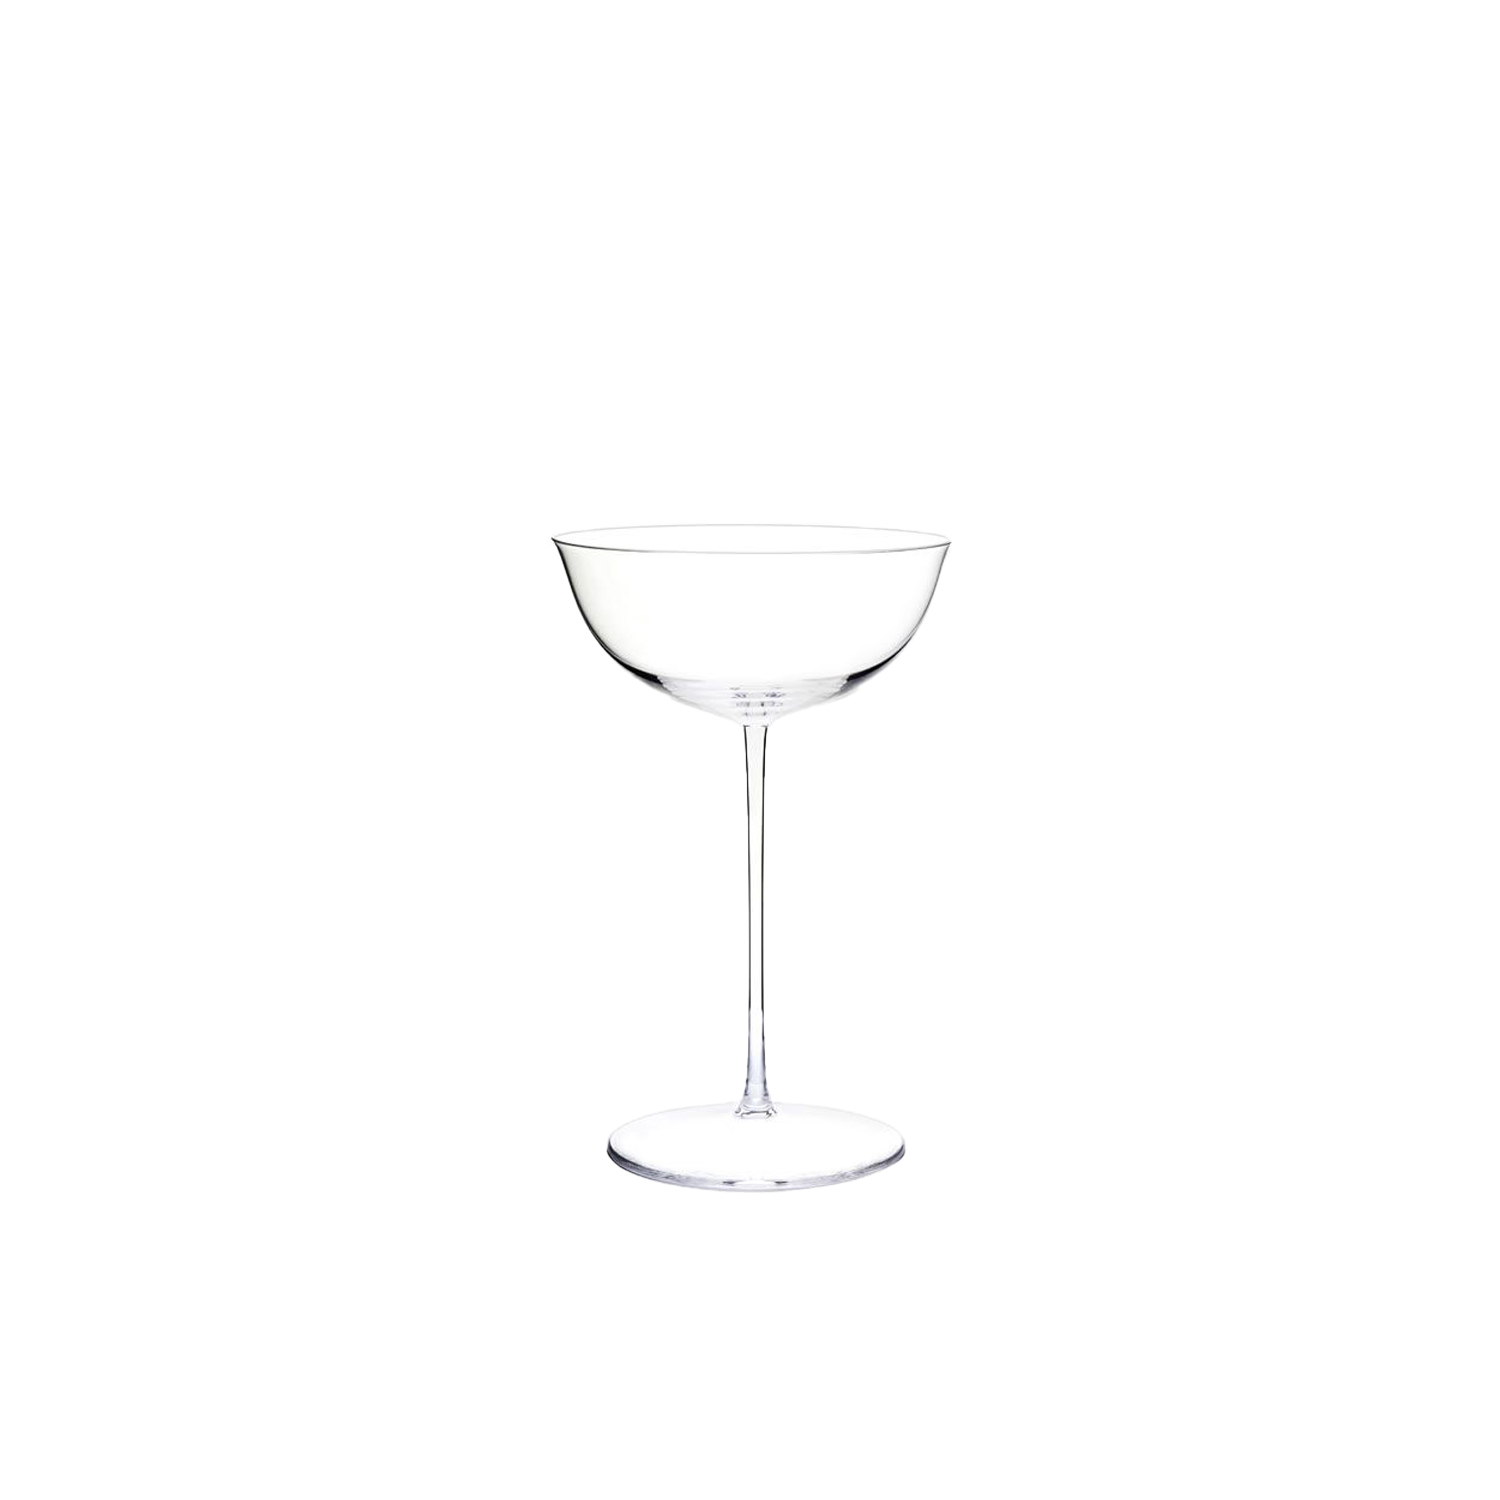 Drinking Set No.238 Champagne Cup - Set of 6 - The perfectly flowing contours of these original Hoffmann shapes make this muslin glass service a classic. Josef Hoffmann designed the elegantly balanced glasses for Lobmeyr as early as 1917. The material, extremely delicate muslin glass, hand-blown in wooden shapes, gives the series its elegance. | Matter of Stuff